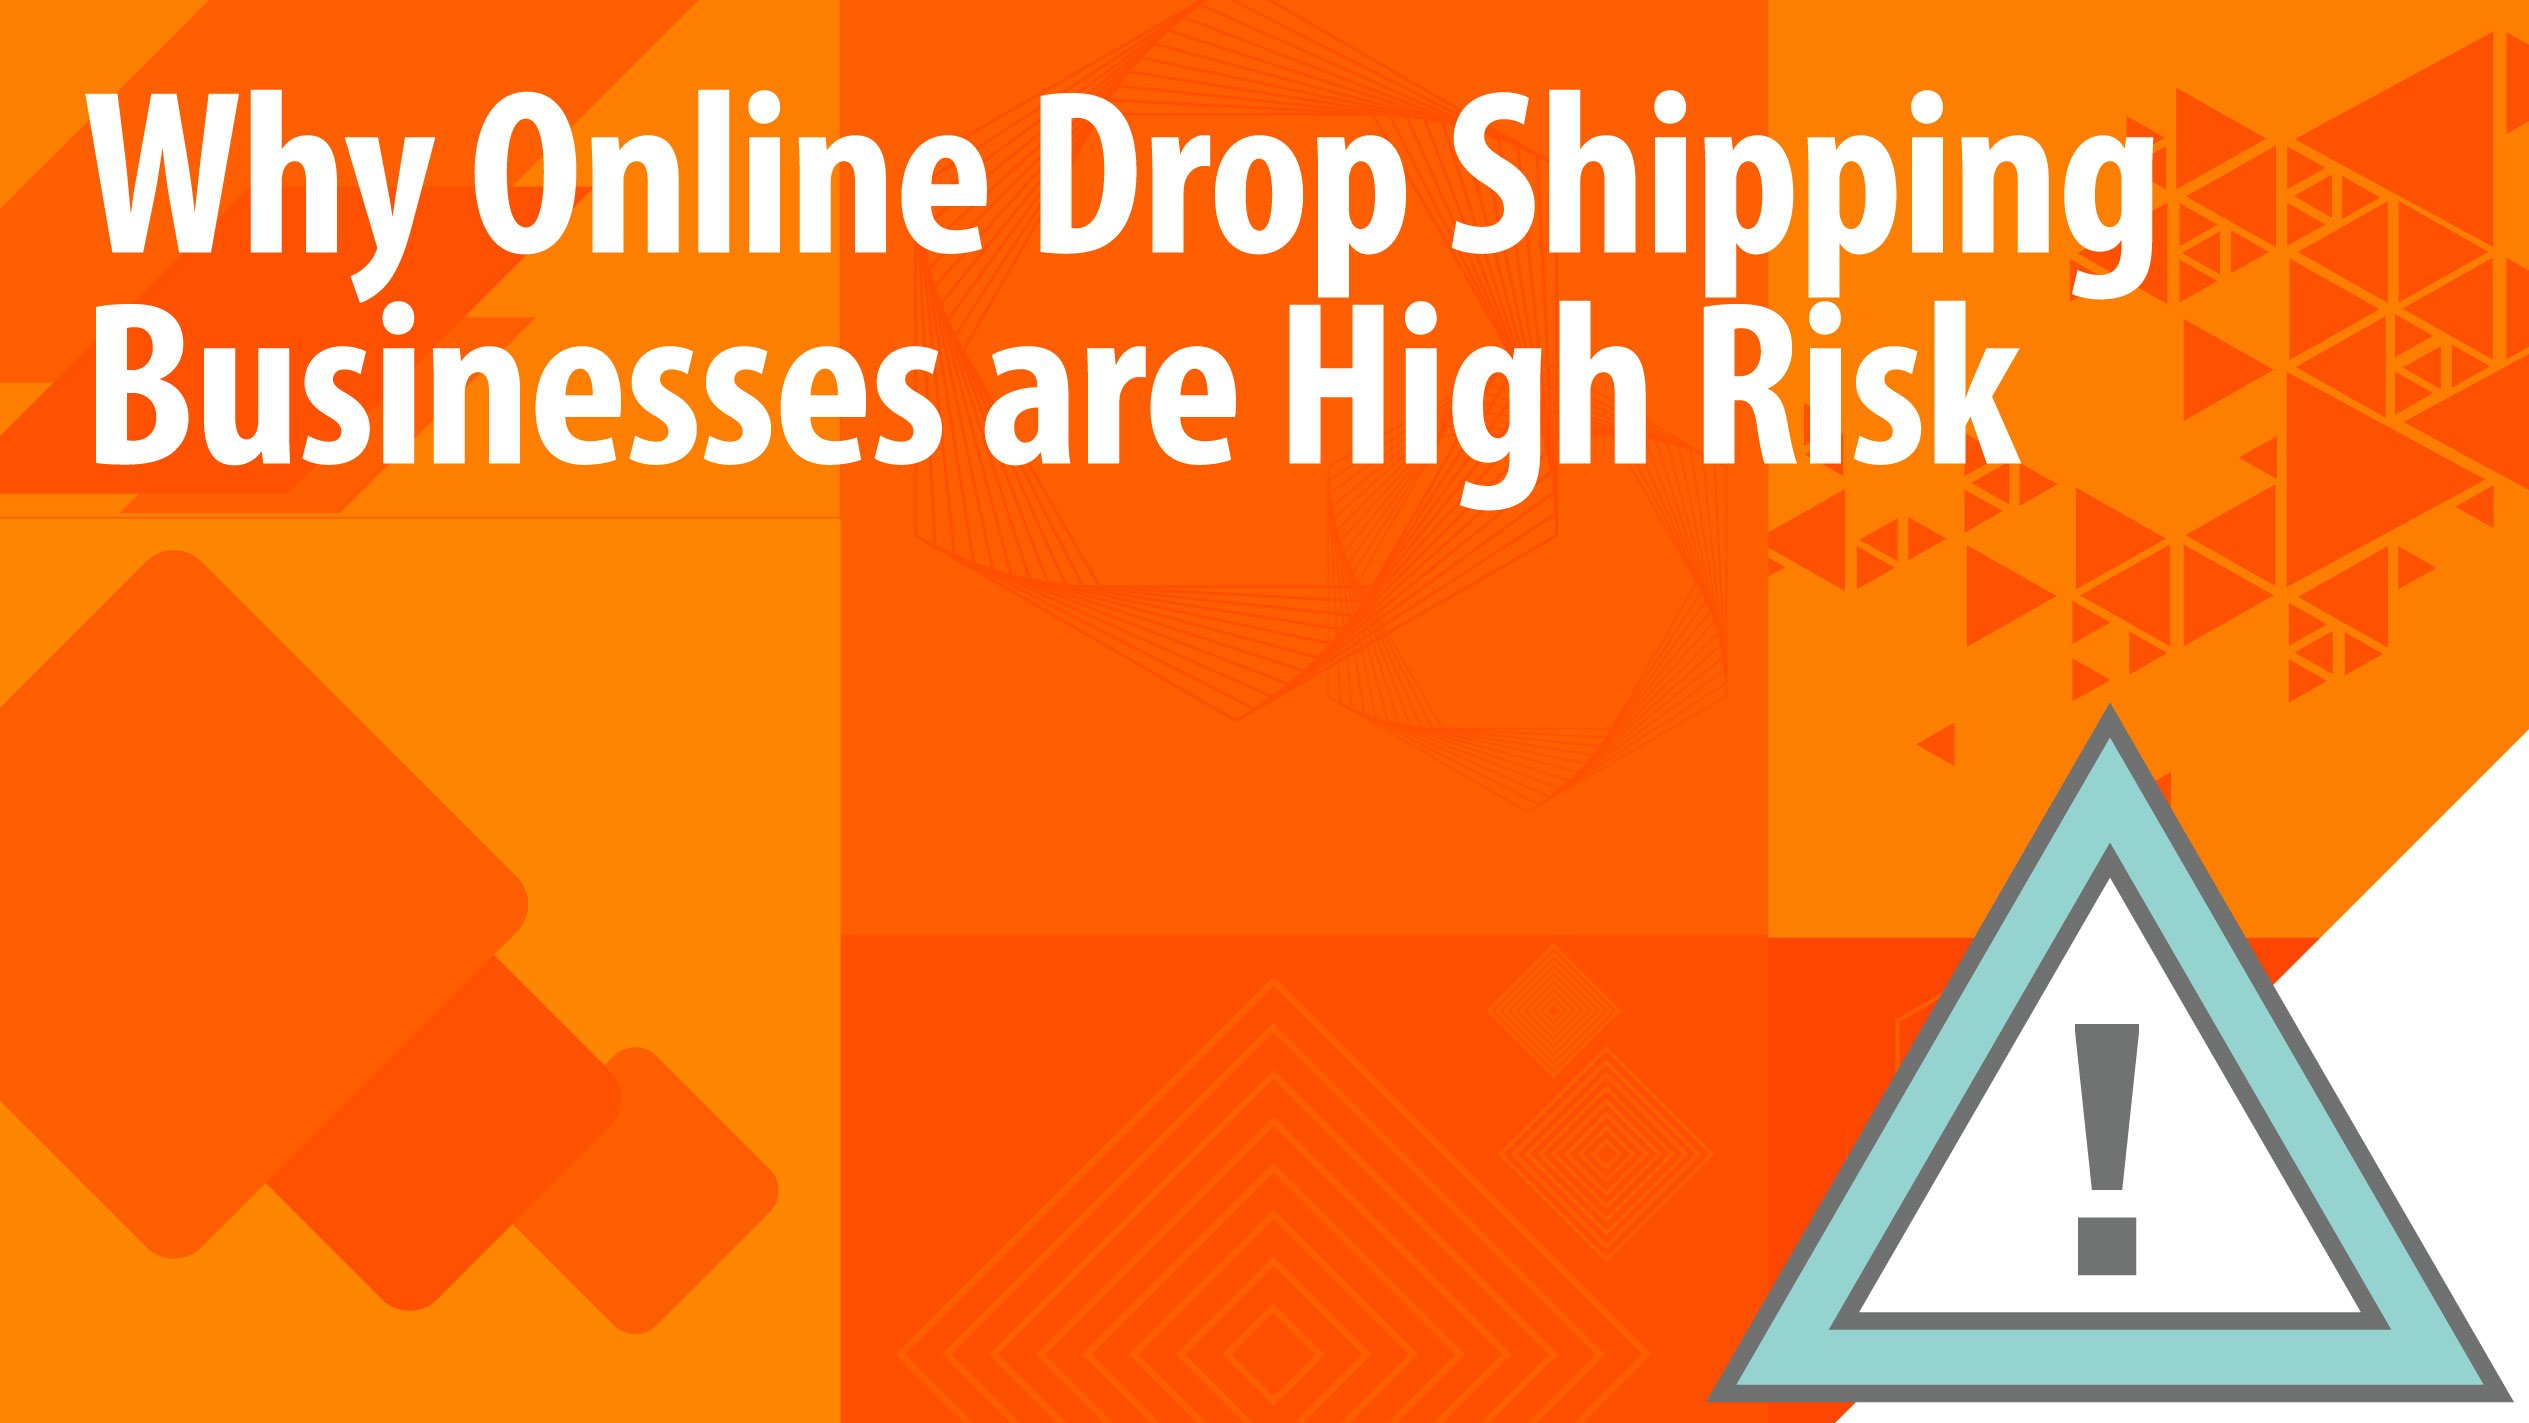 Why Online Drop Shipping Businesses are High Risk